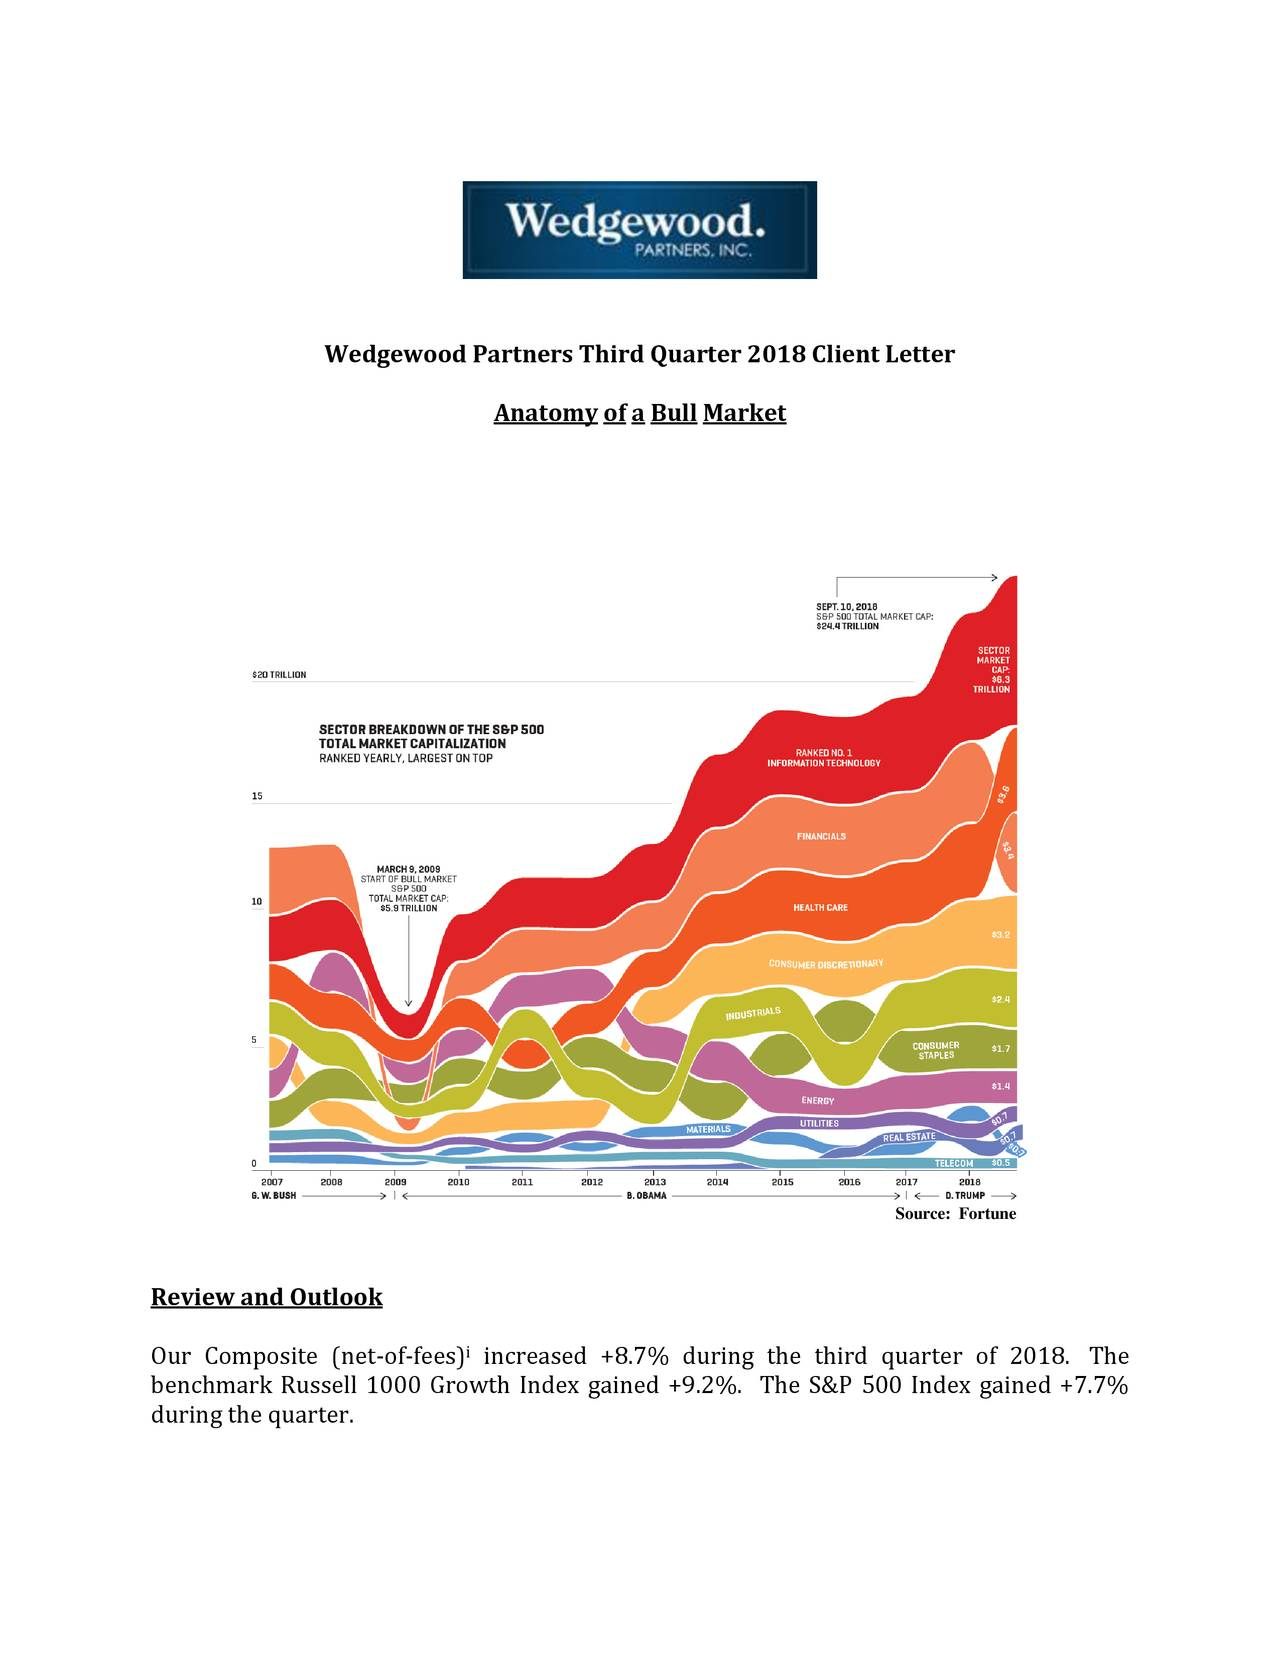 Wedgewood Partners Third Quarter 2018 Client Letter